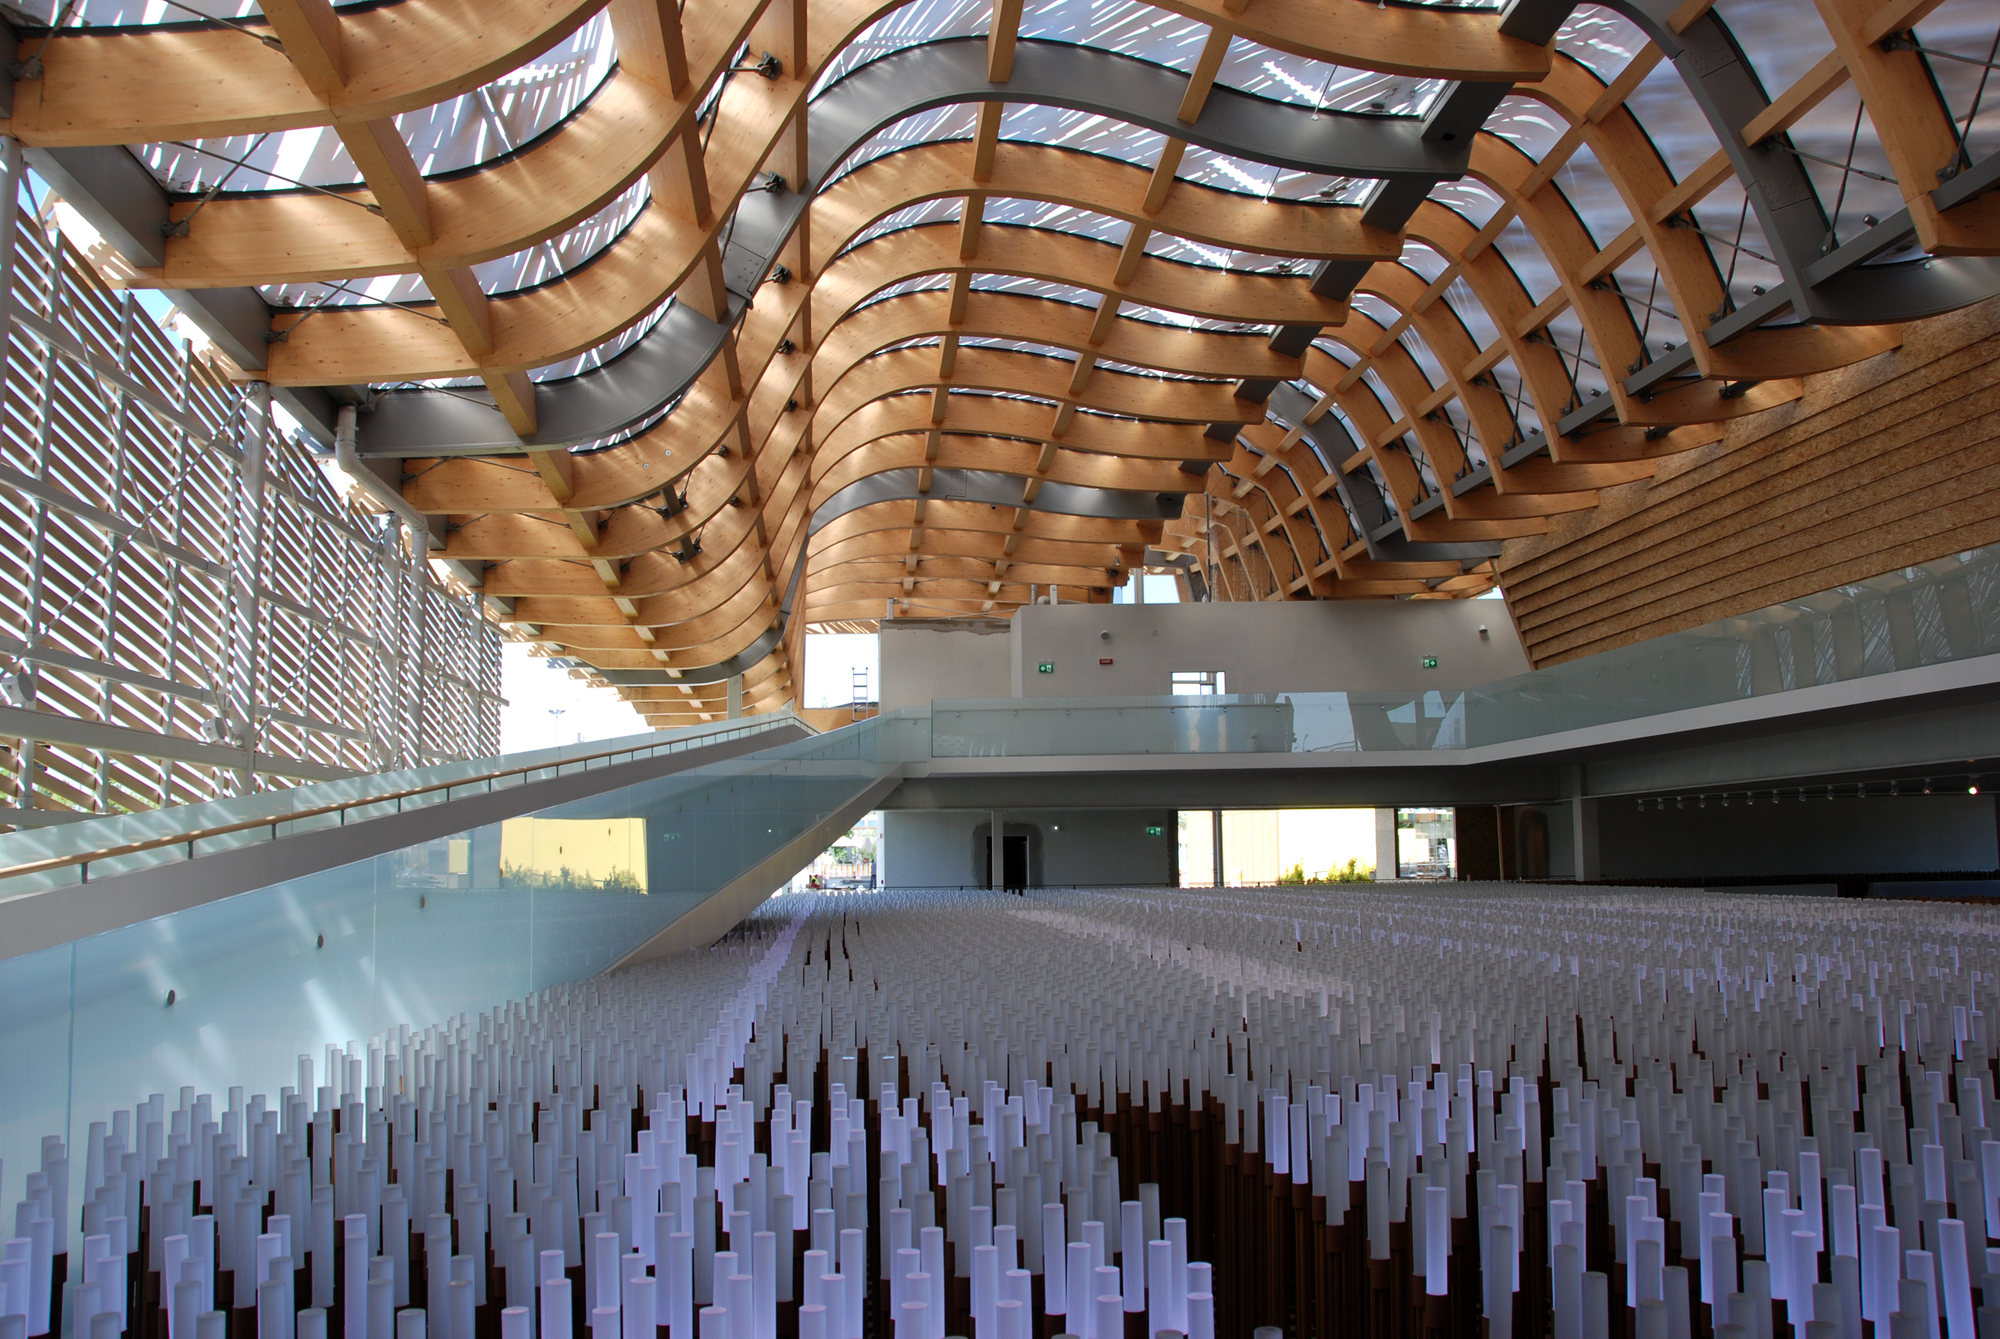 beauty of woodinnovation china pavilion milan expo 2015 milan italy - Innovative Wood Beam Ceiling